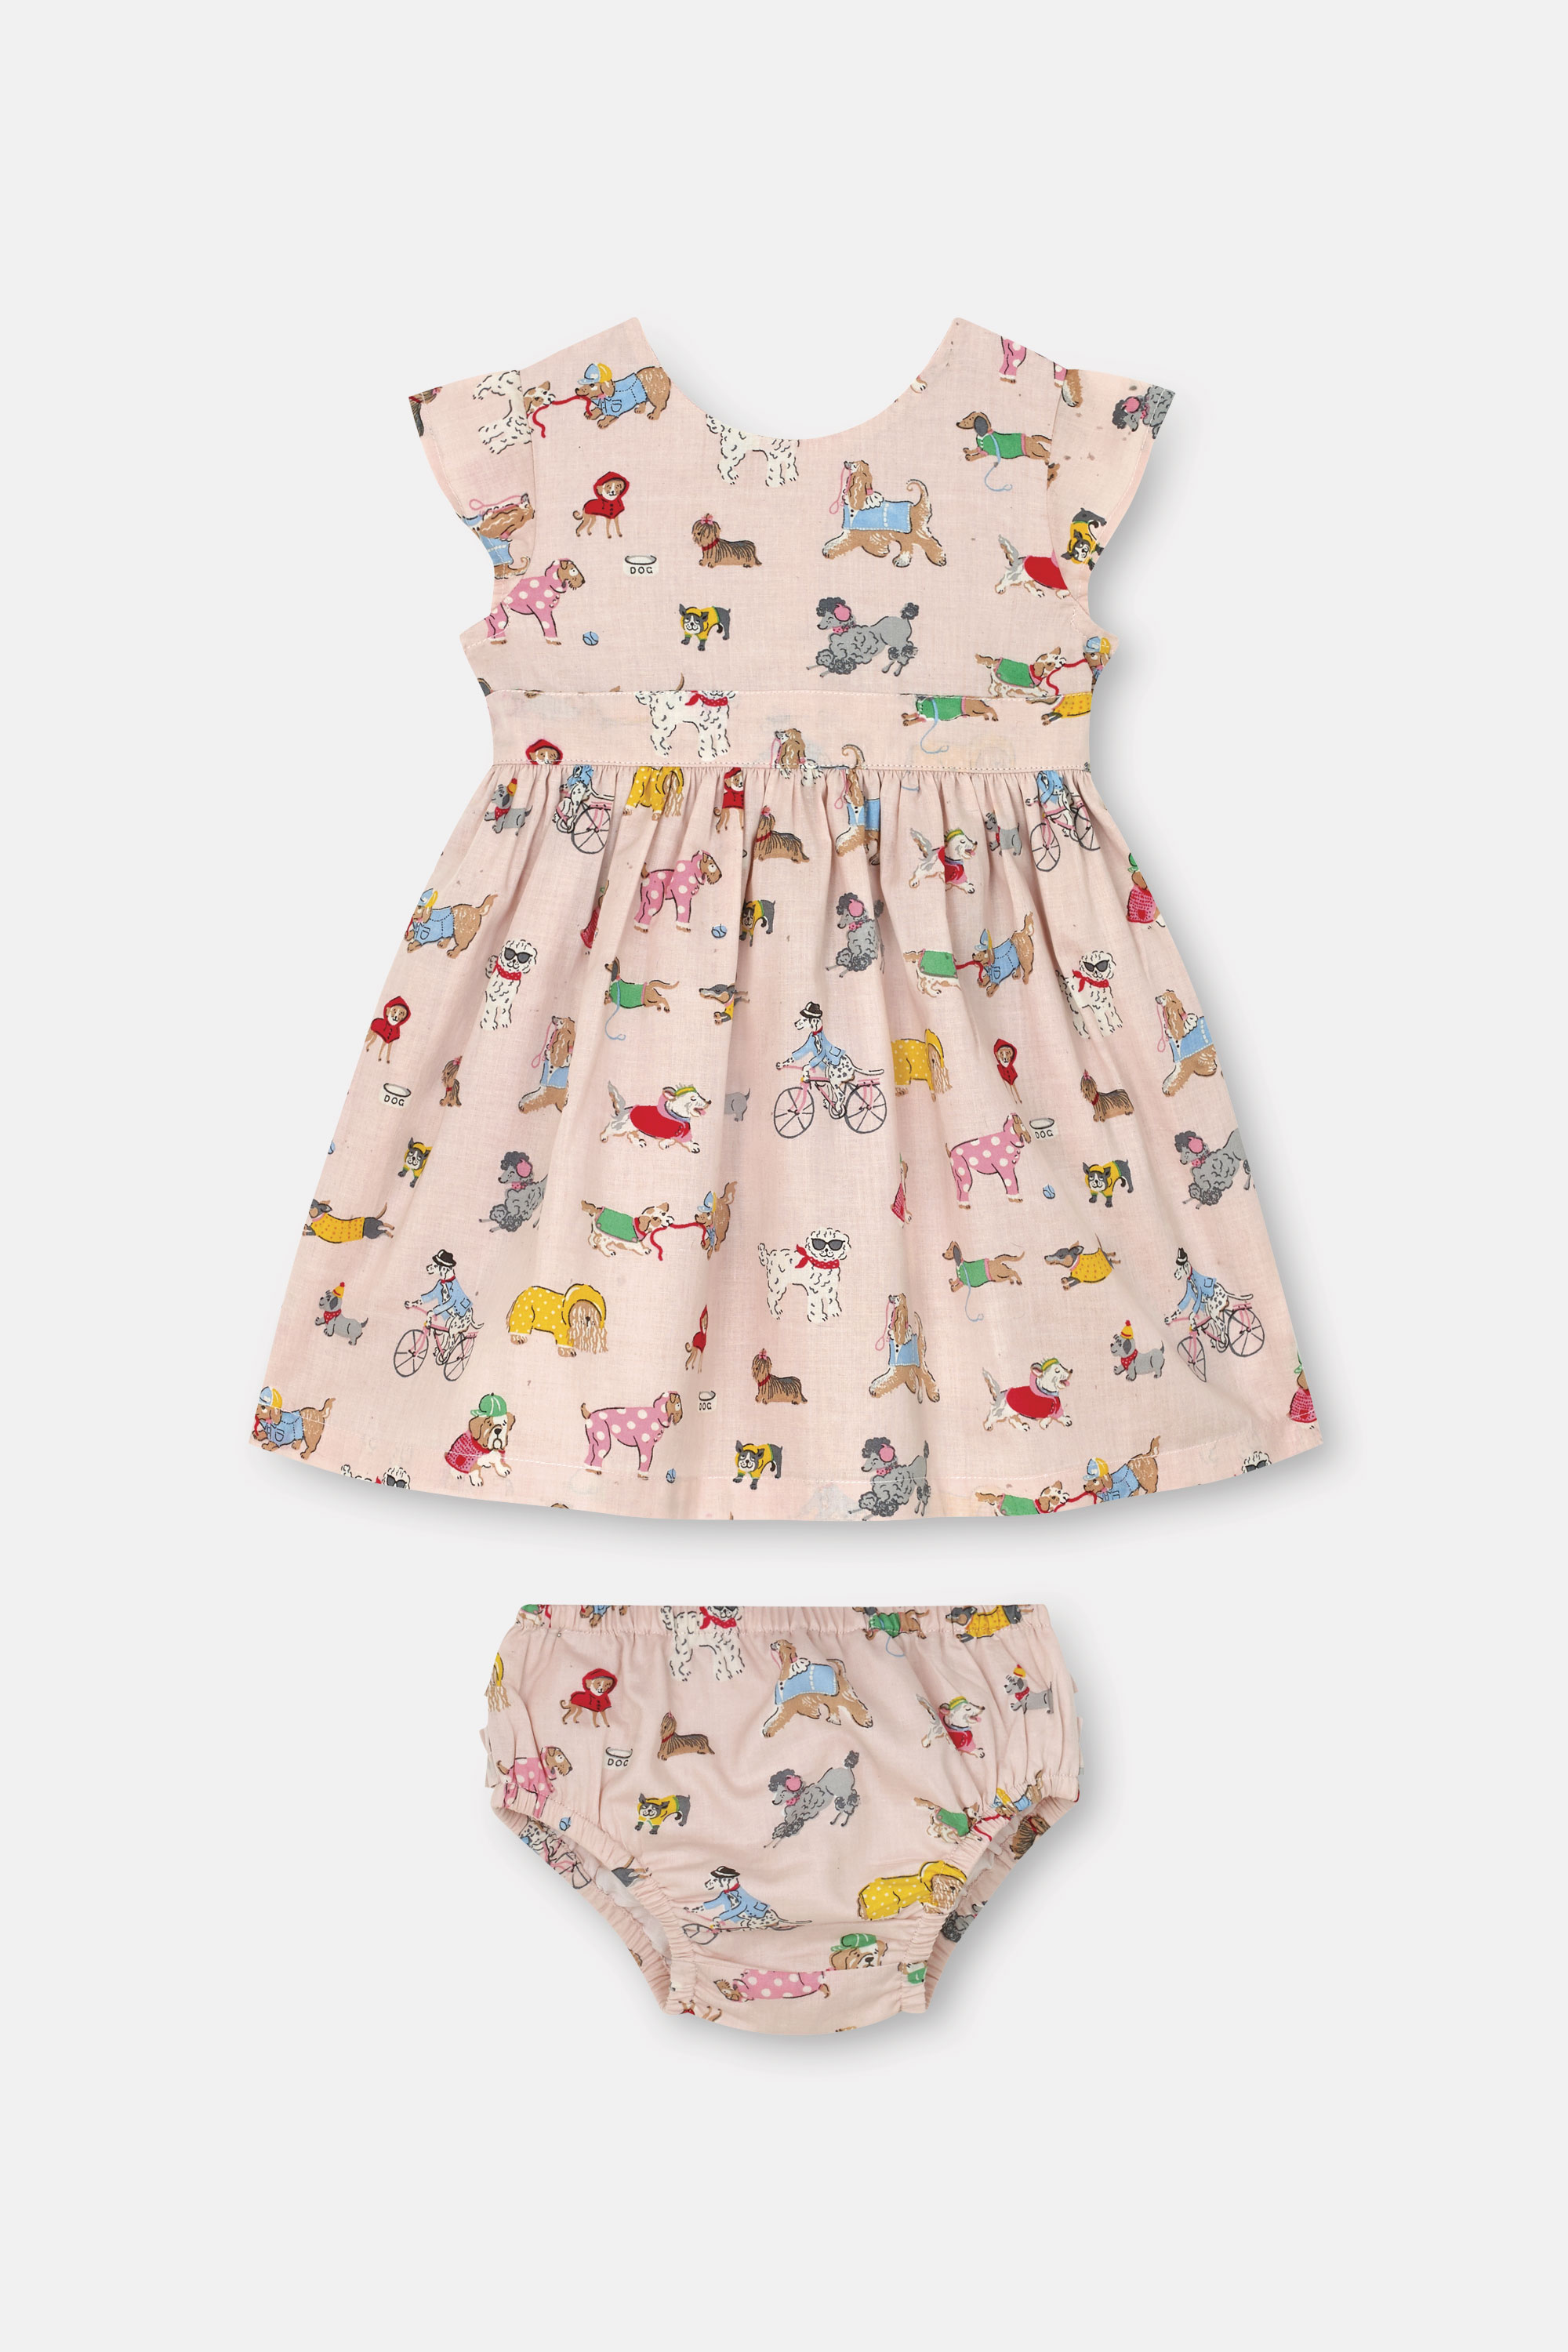 Cath Kidston Small Park Dogs Baby Ayda Dress in Soft Pink, 9-12 Mo